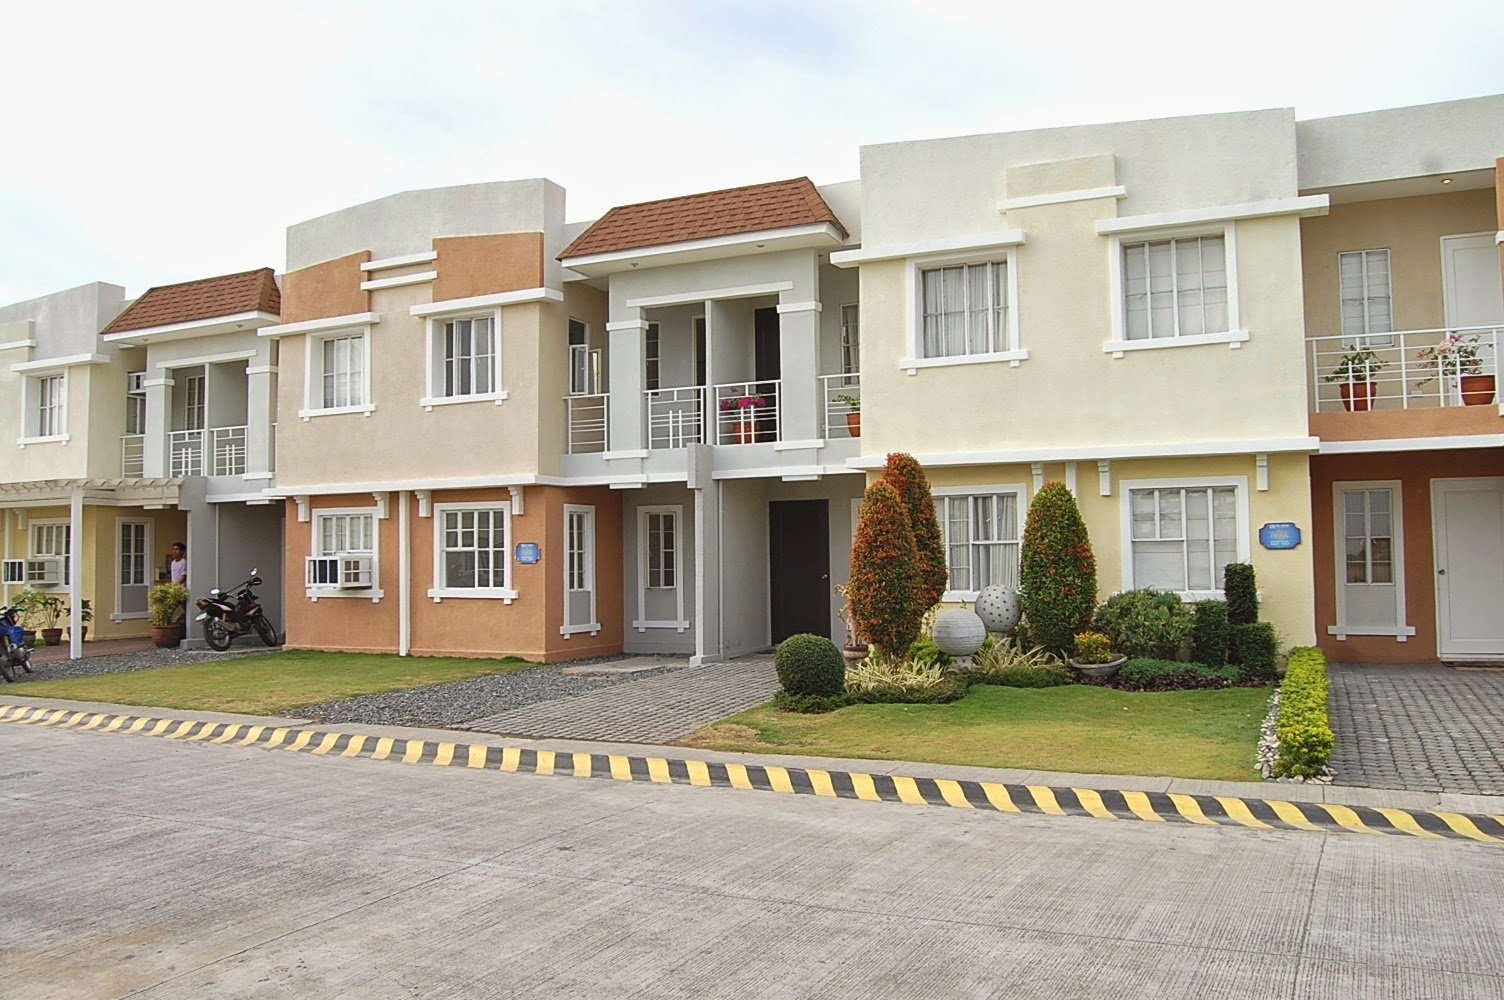 house for sale in lancaster cavite thru pag ibig financing